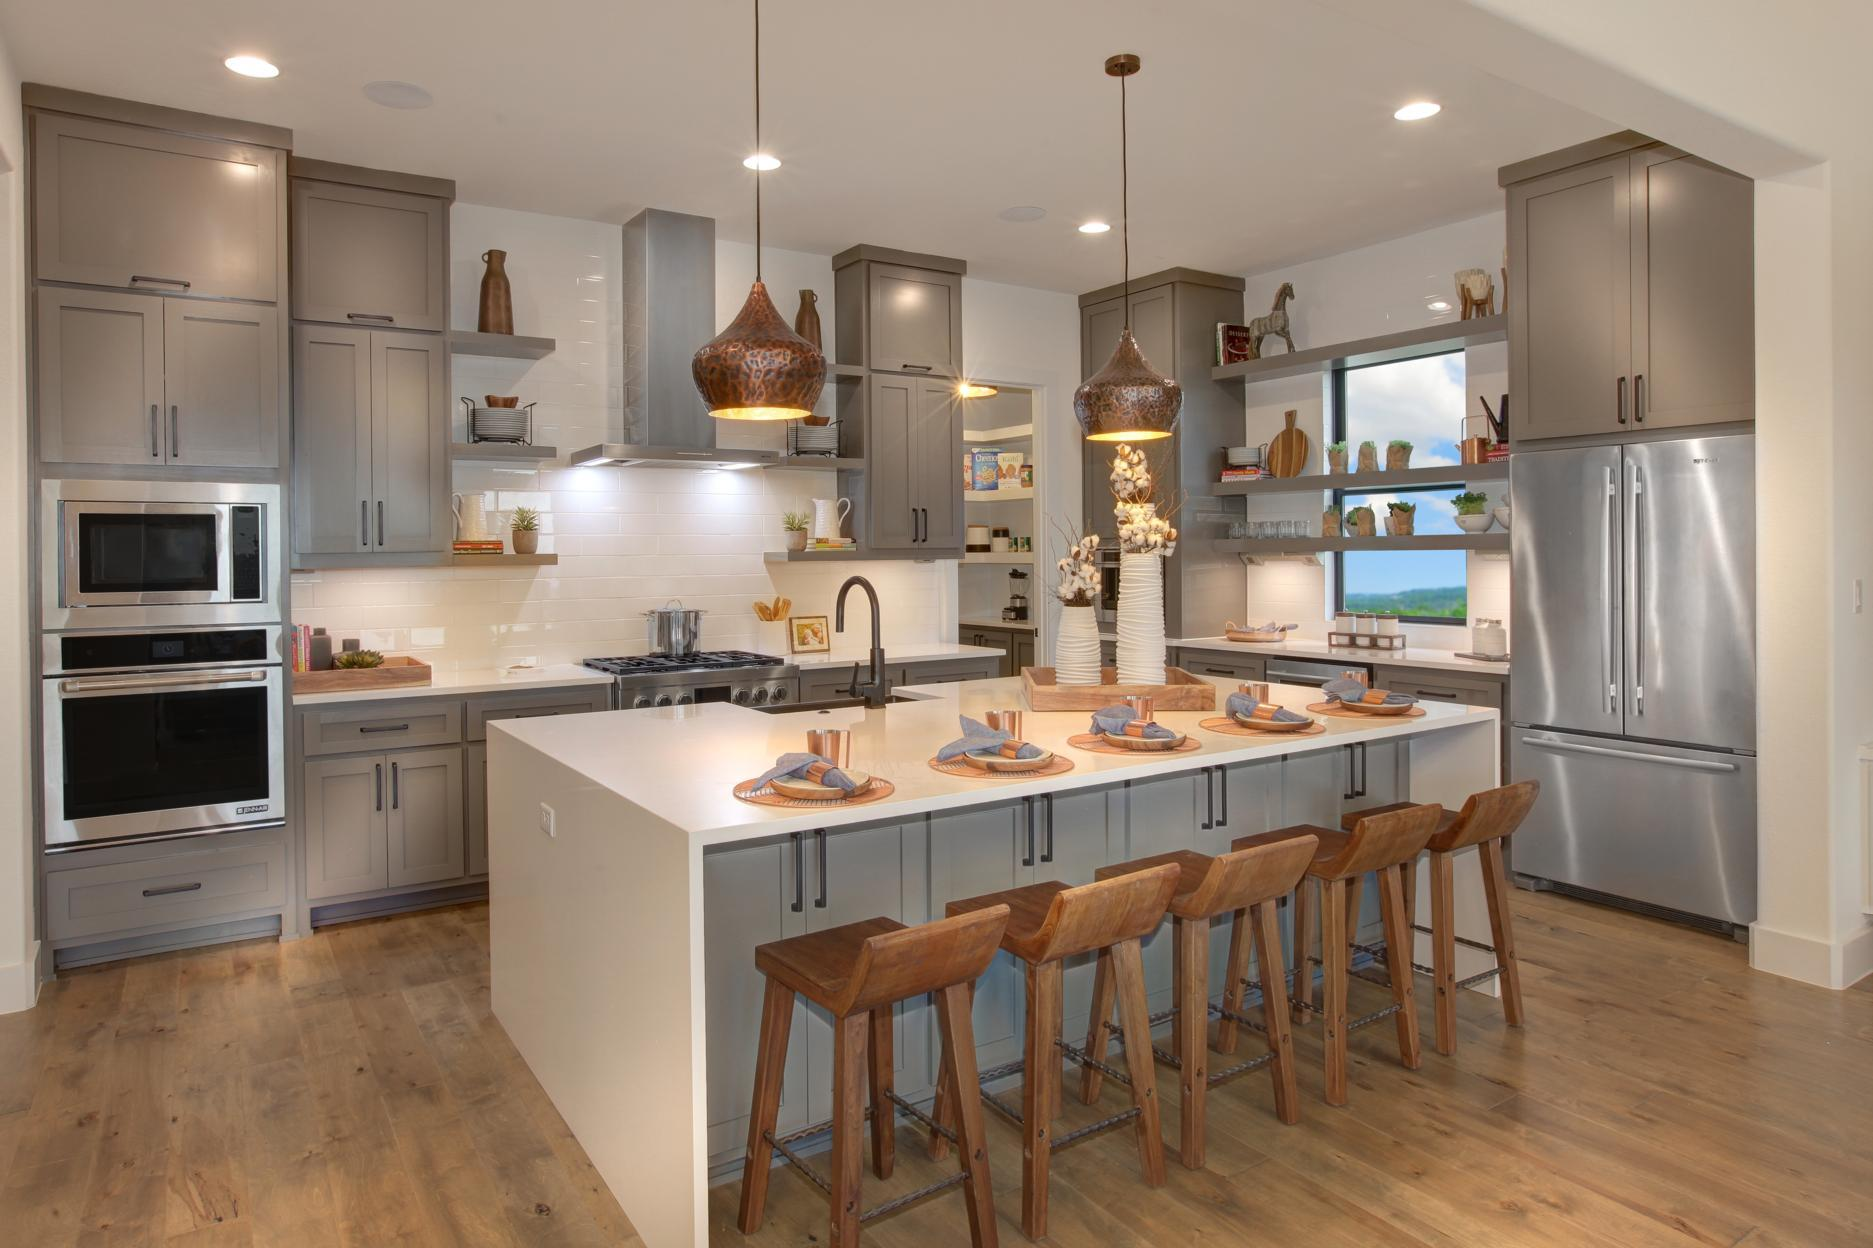 Kitchen featured in the Grantley By Drees Custom Homes in Austin, TX